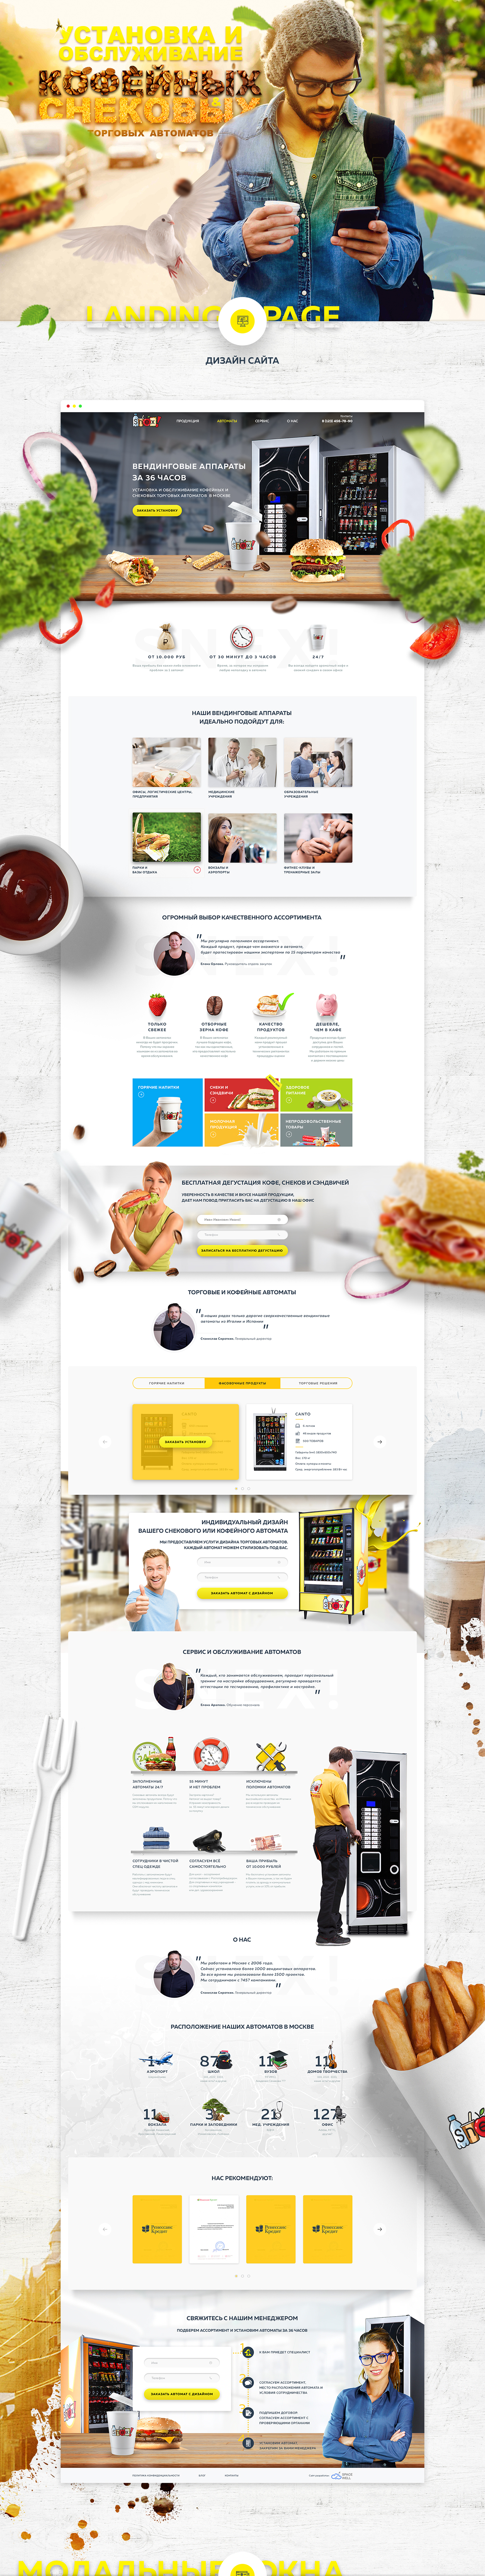 vending,Coffee,snack,landing page,Vending Machines,b2c,photoshop,Website,interactive,Web